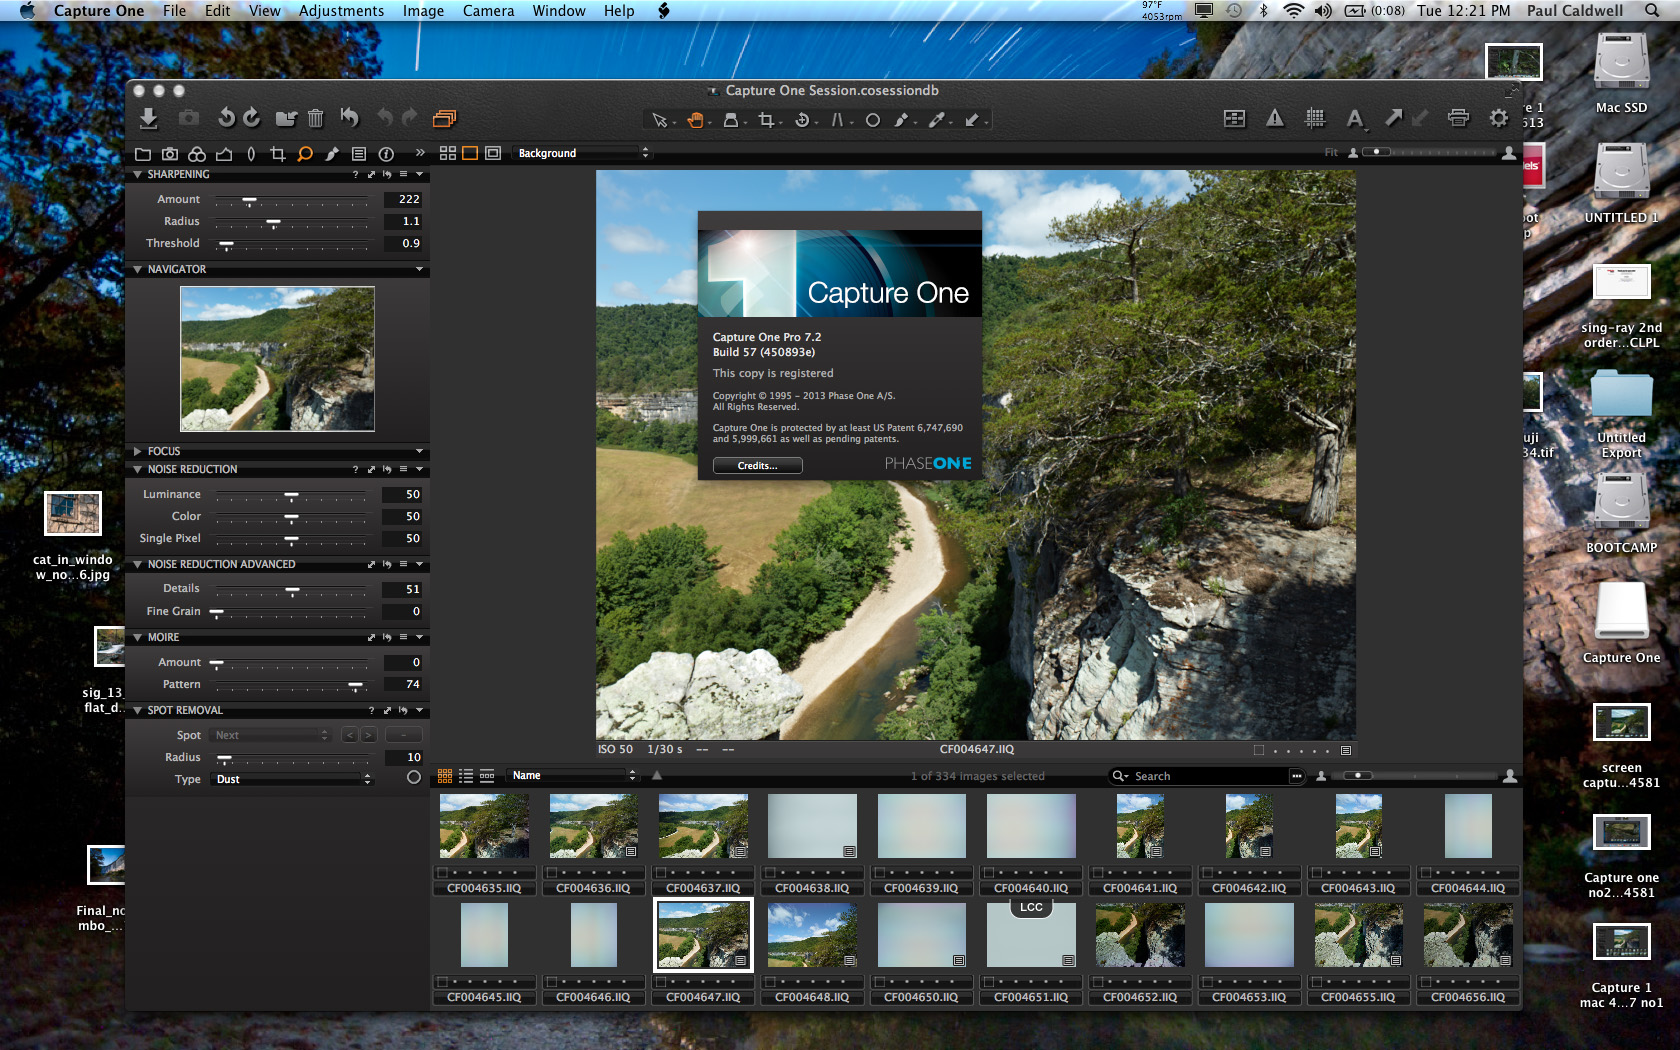 Capture One 7.2 is out